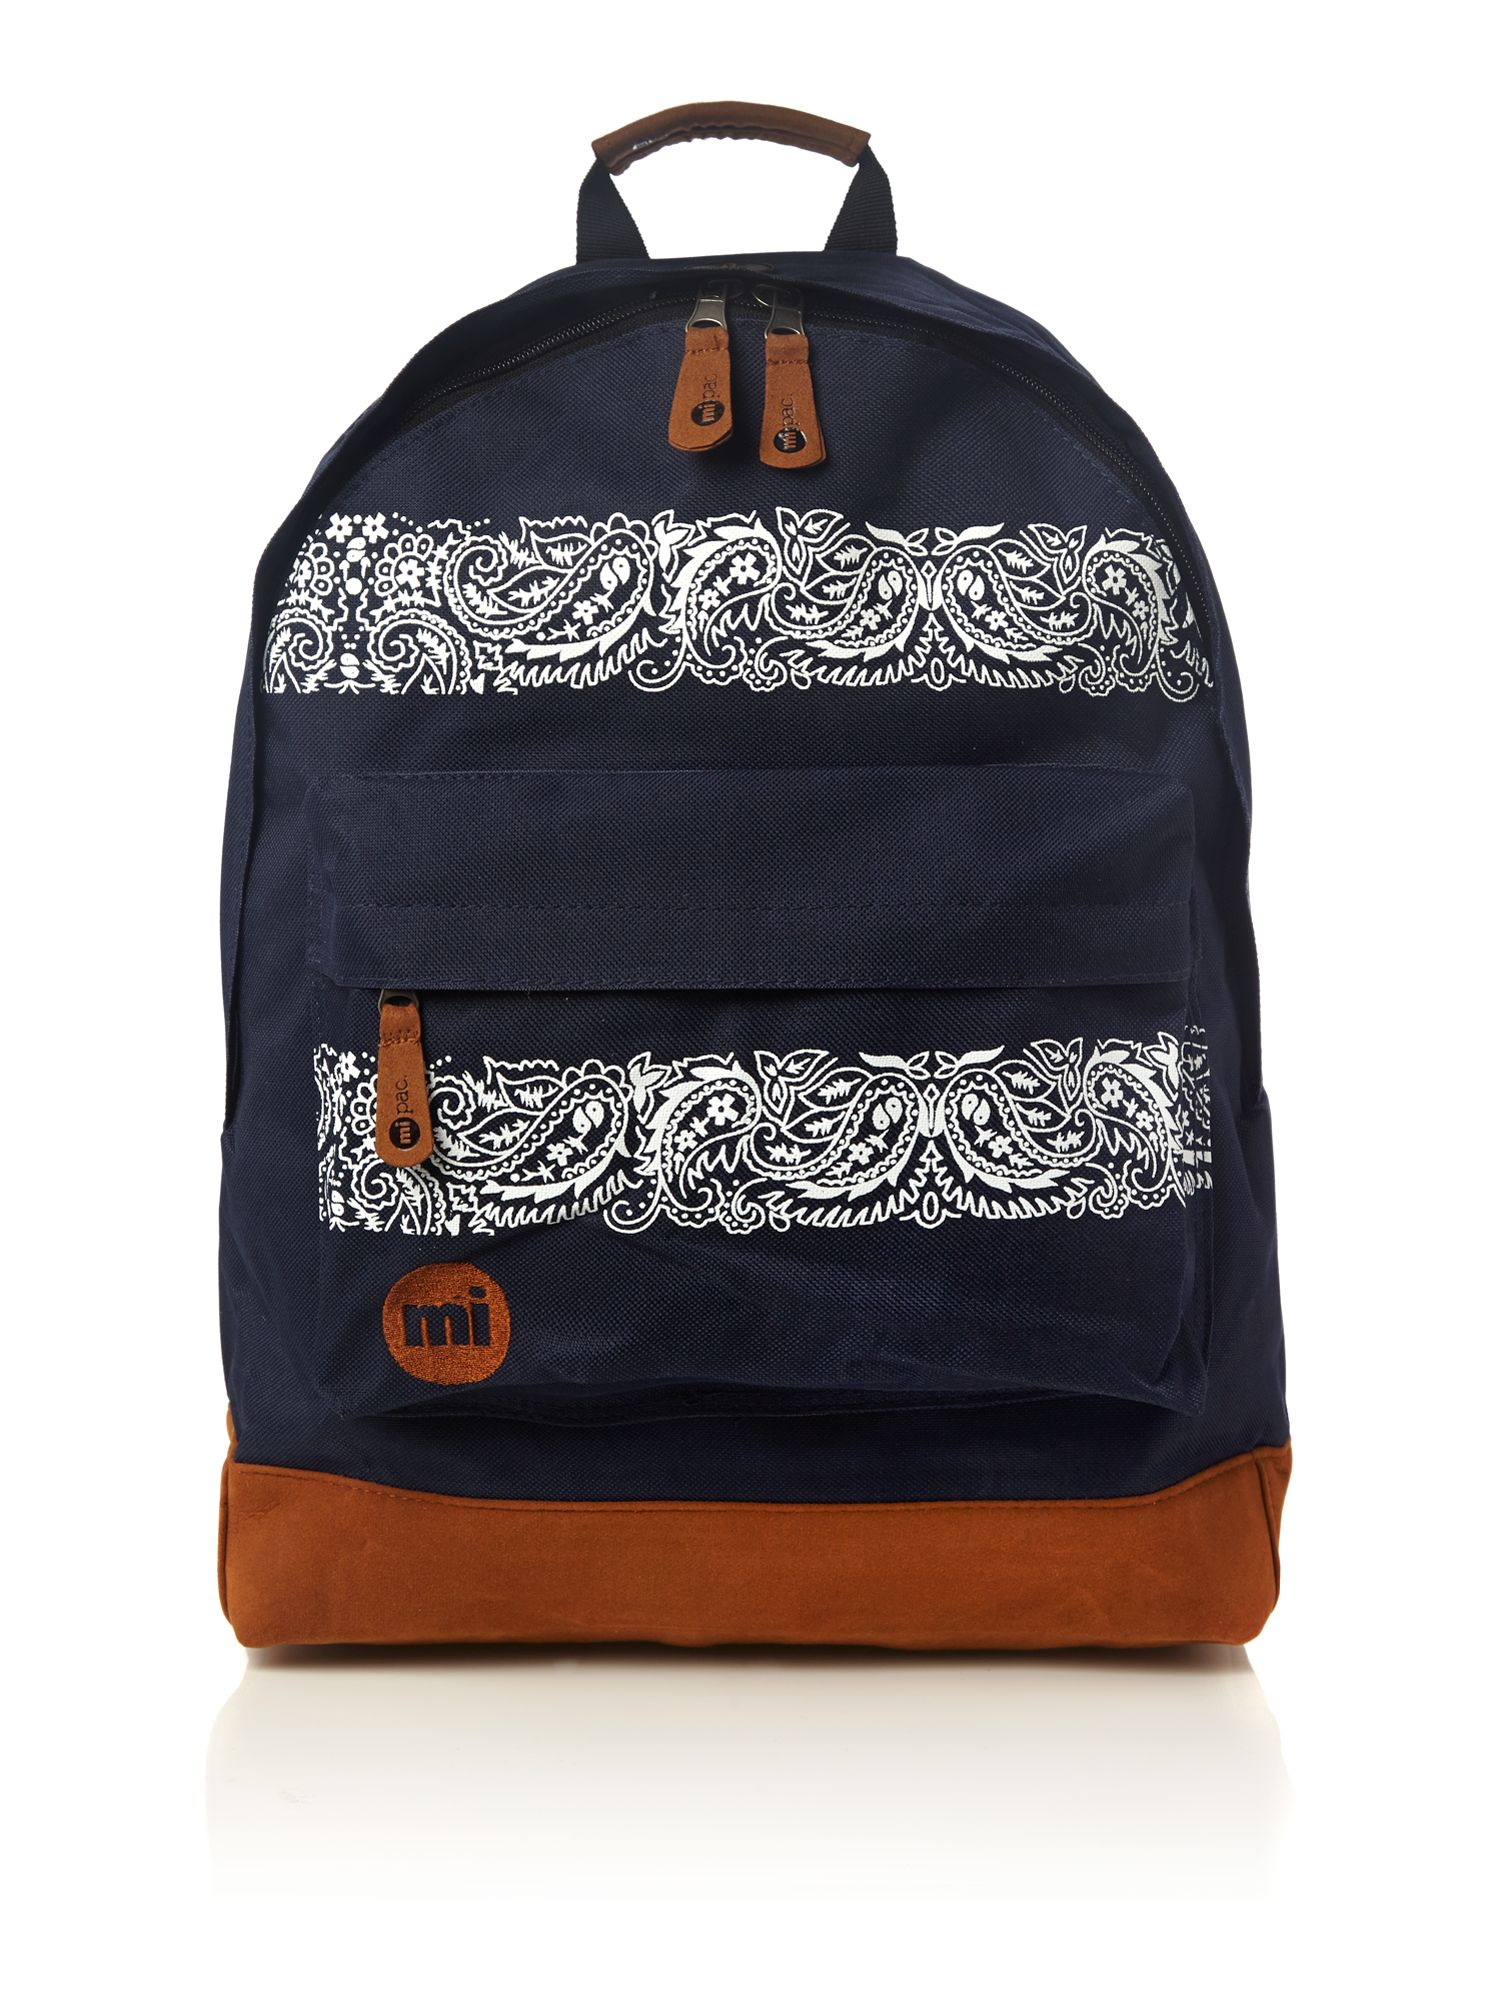 Paisley print backpack